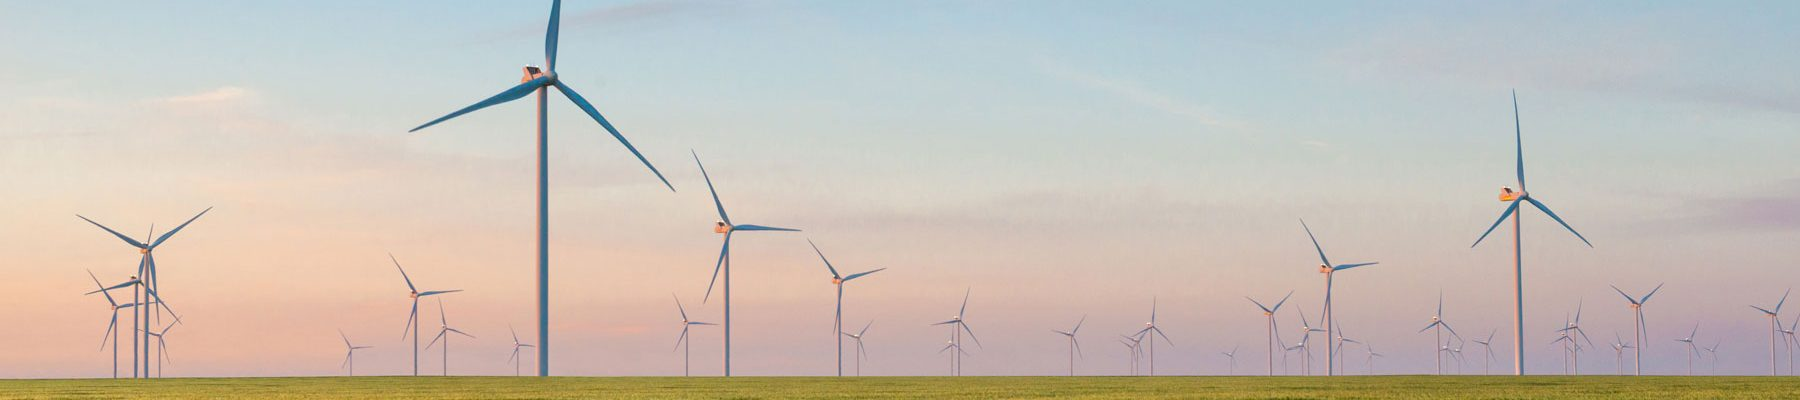 Online Master of Energy and Environmental Management image of wind turbine natural resources energy field.